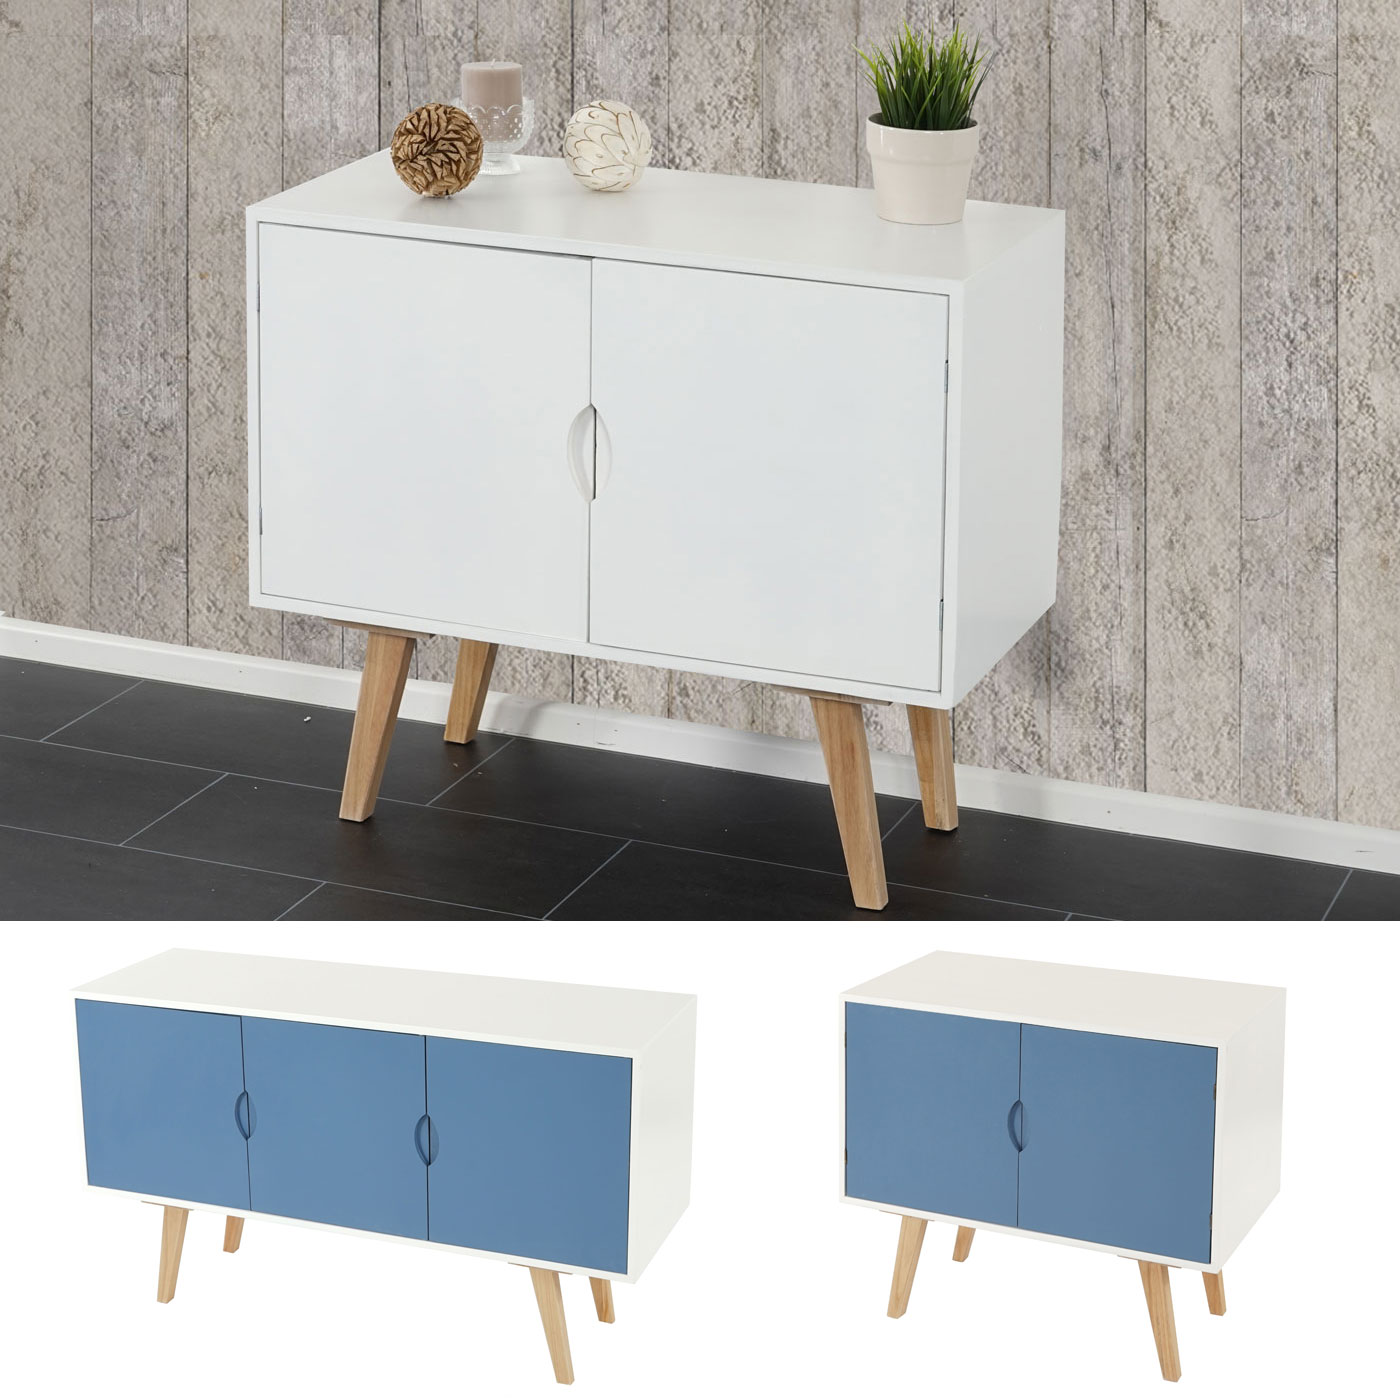 kommode malm t292 schrank sideboard retro design blaue oder wei e front ebay. Black Bedroom Furniture Sets. Home Design Ideas